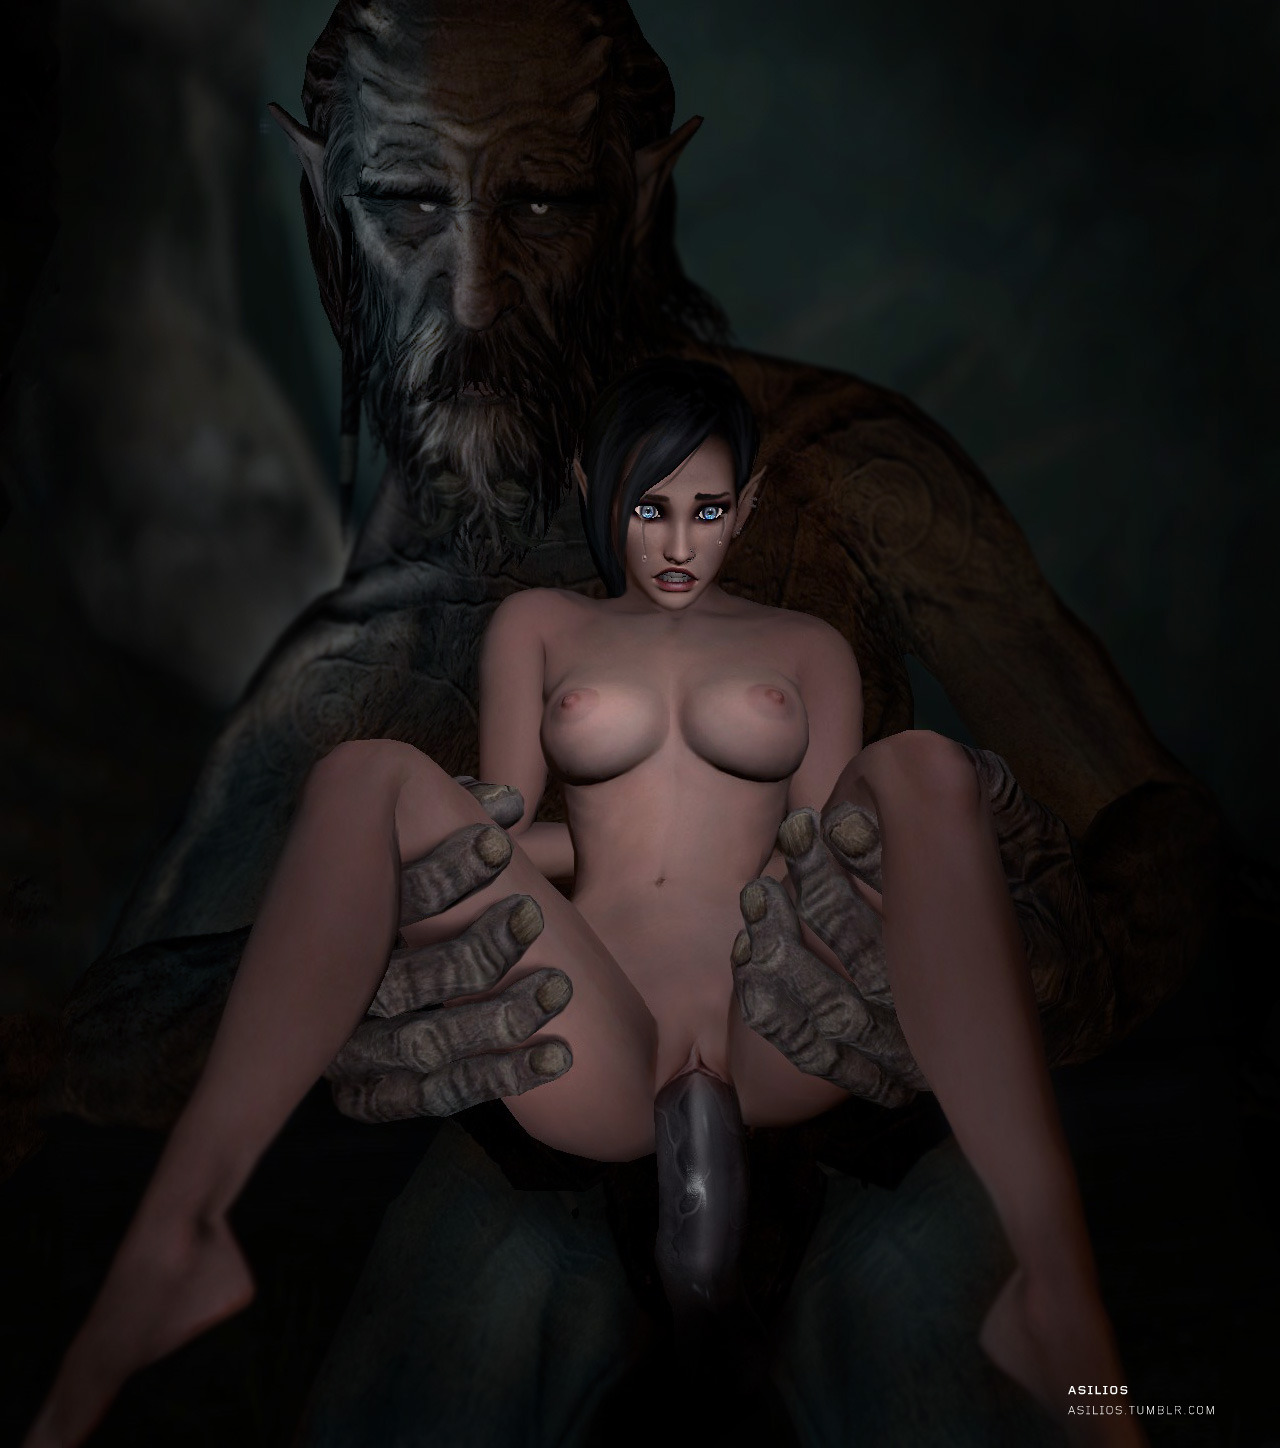 Elf penis size nude images